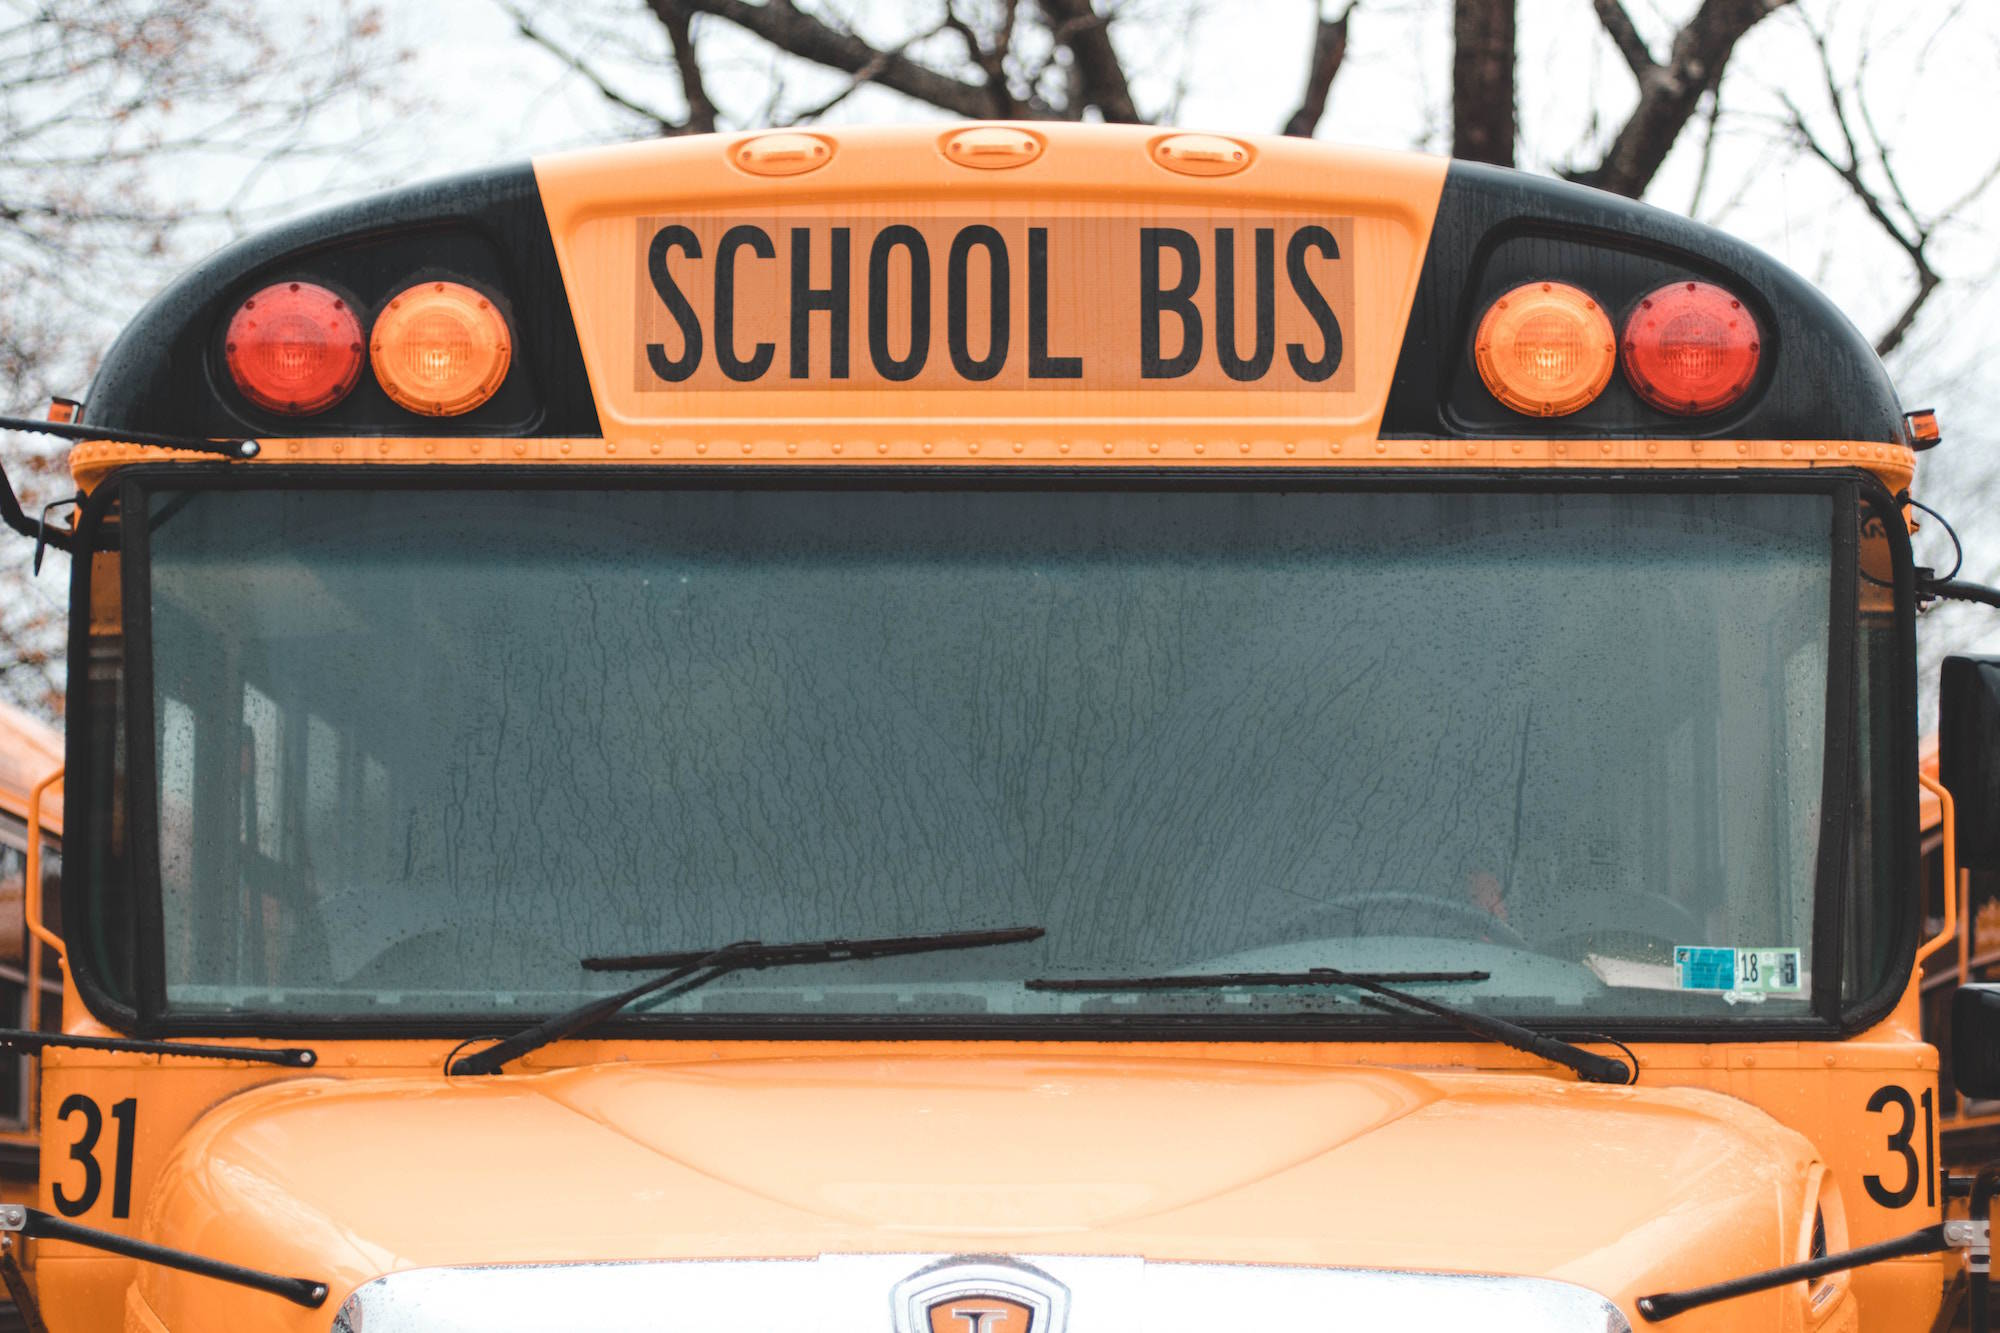 Penticton school bus driver calls out bad drivers